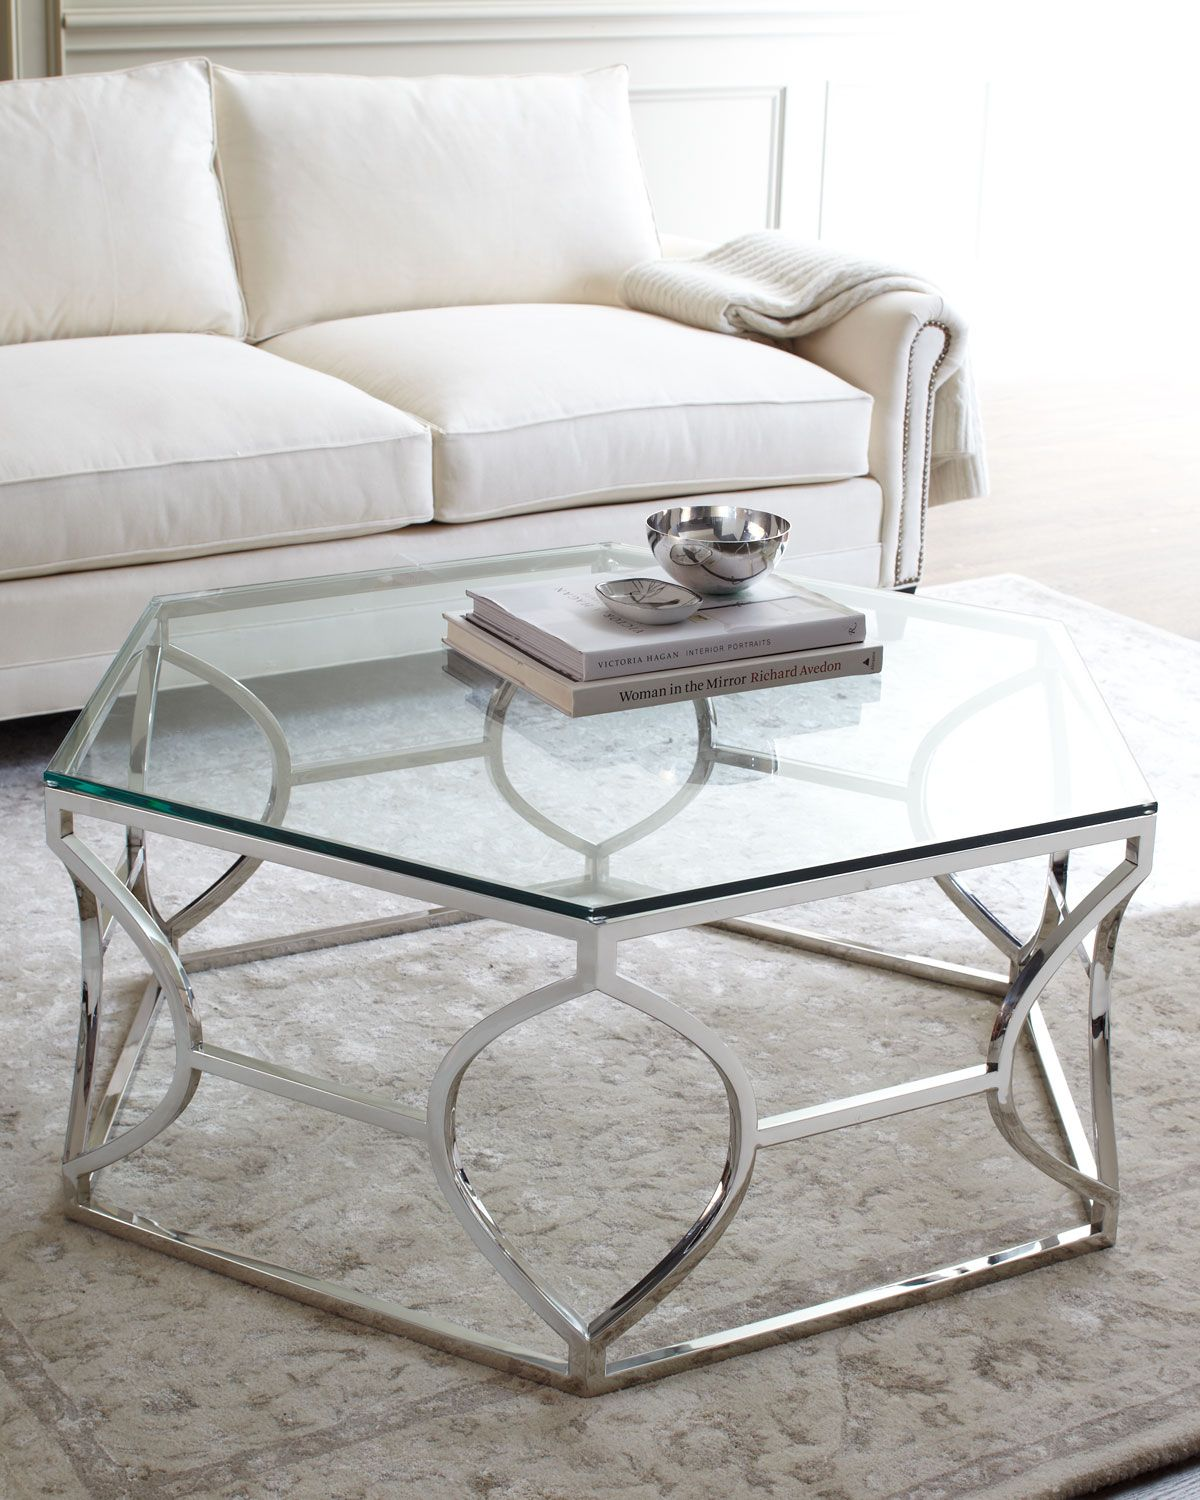 30 Glass Coffee Tables That Bring Transparency To Your Living Room Coffee Table Coffee Table Design Glass Table Living Room [ jpg ]